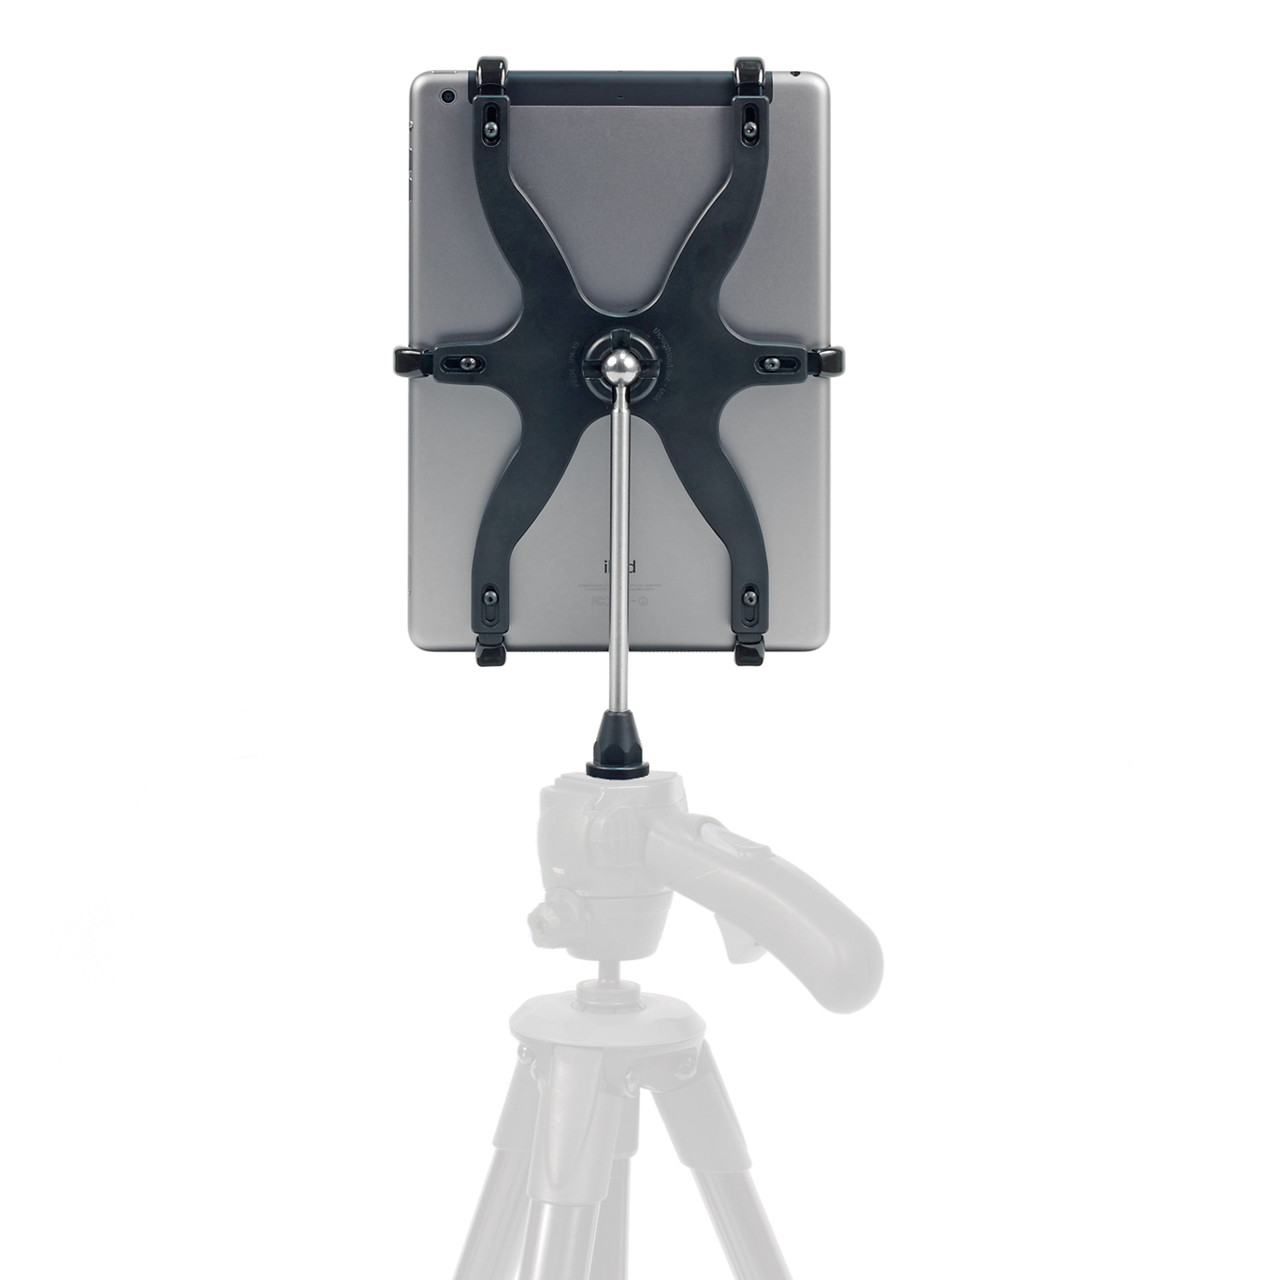 Tripod Mount for iPad Air